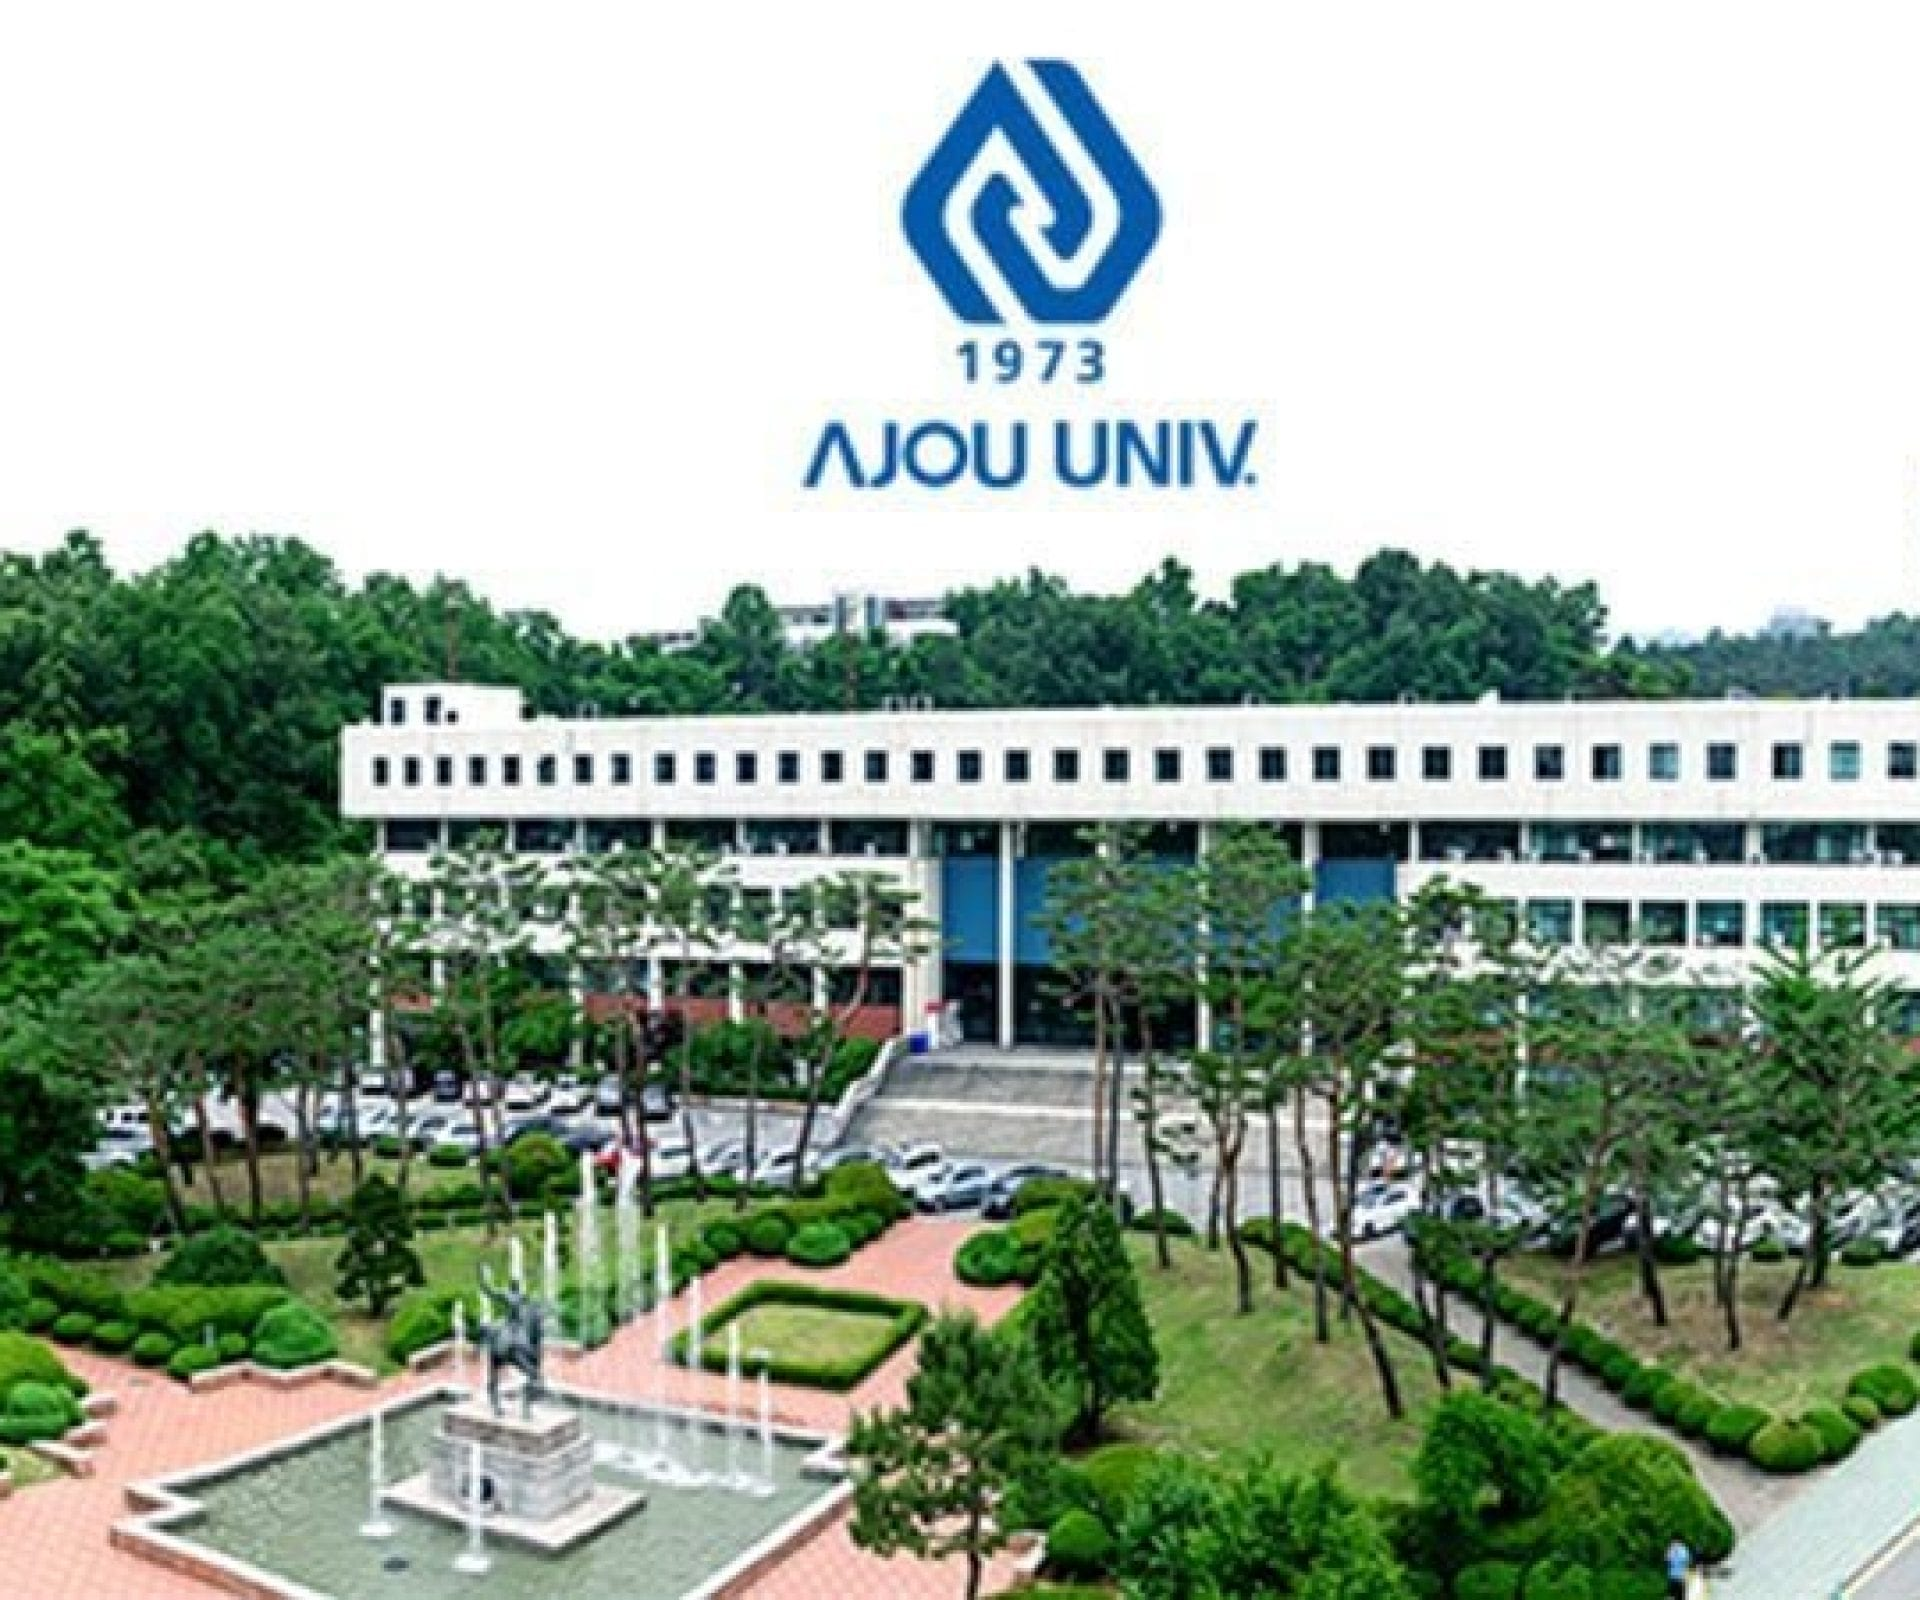 Ajou University | Suwon-si, Gyeonggi-do